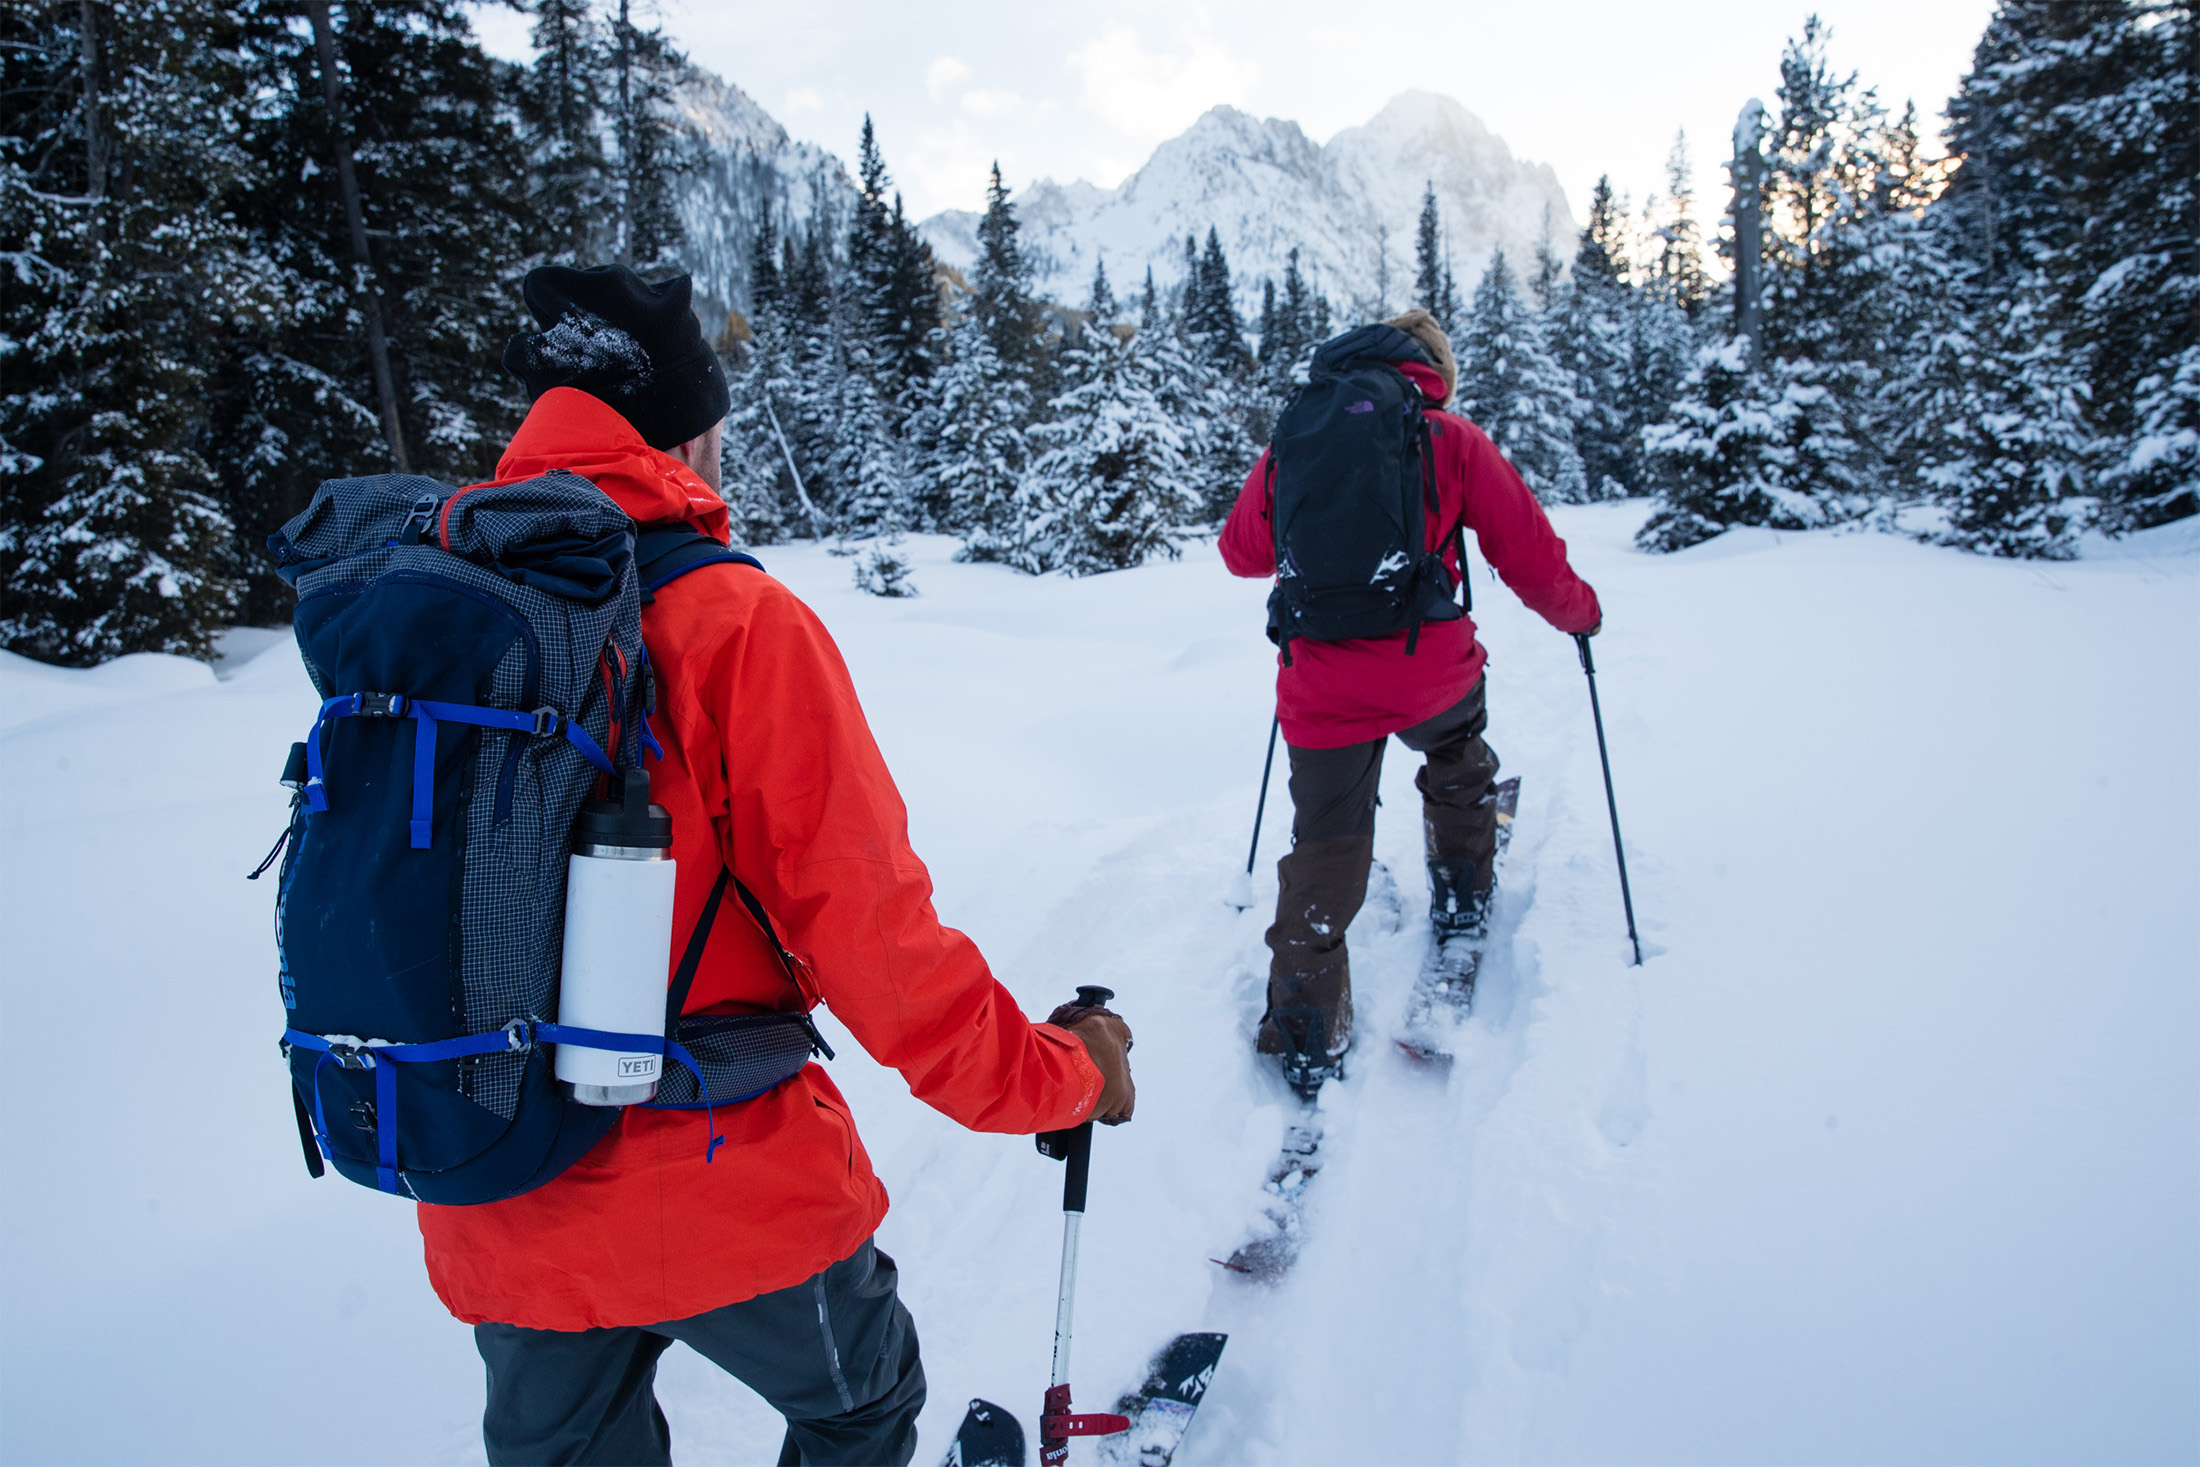 Two backcountry skiers, one carrying a YETI Rambler